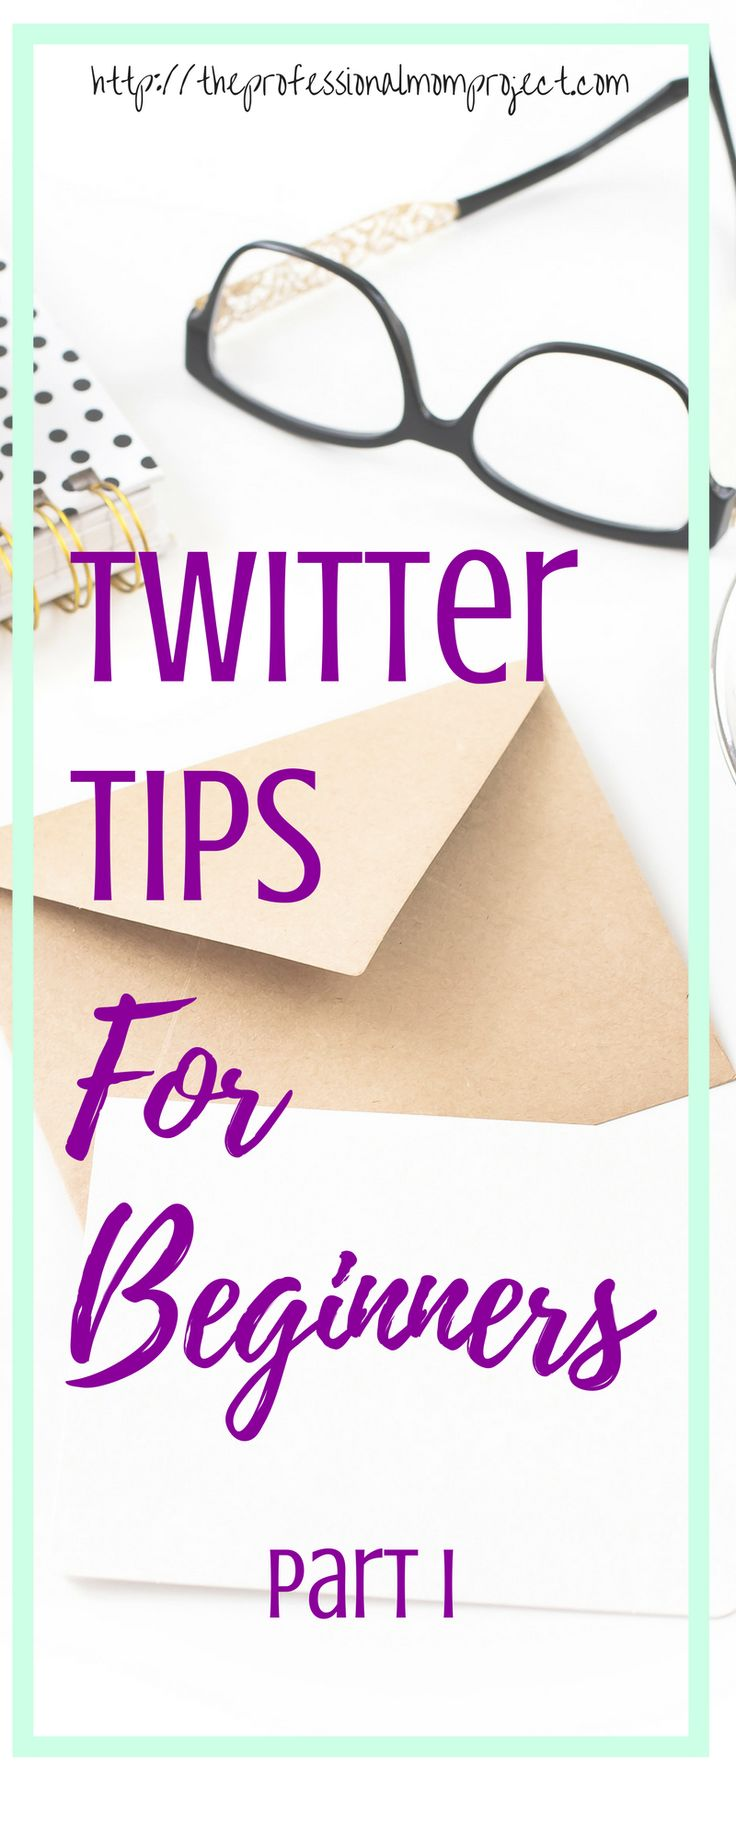 Twitter tips for beginners part 1 - learn to use twitter | twitter tips | twitter ideas | twitter followers | twitter marketing | social media marketing | twitter followers | digital marketing #twitter #socialmedia